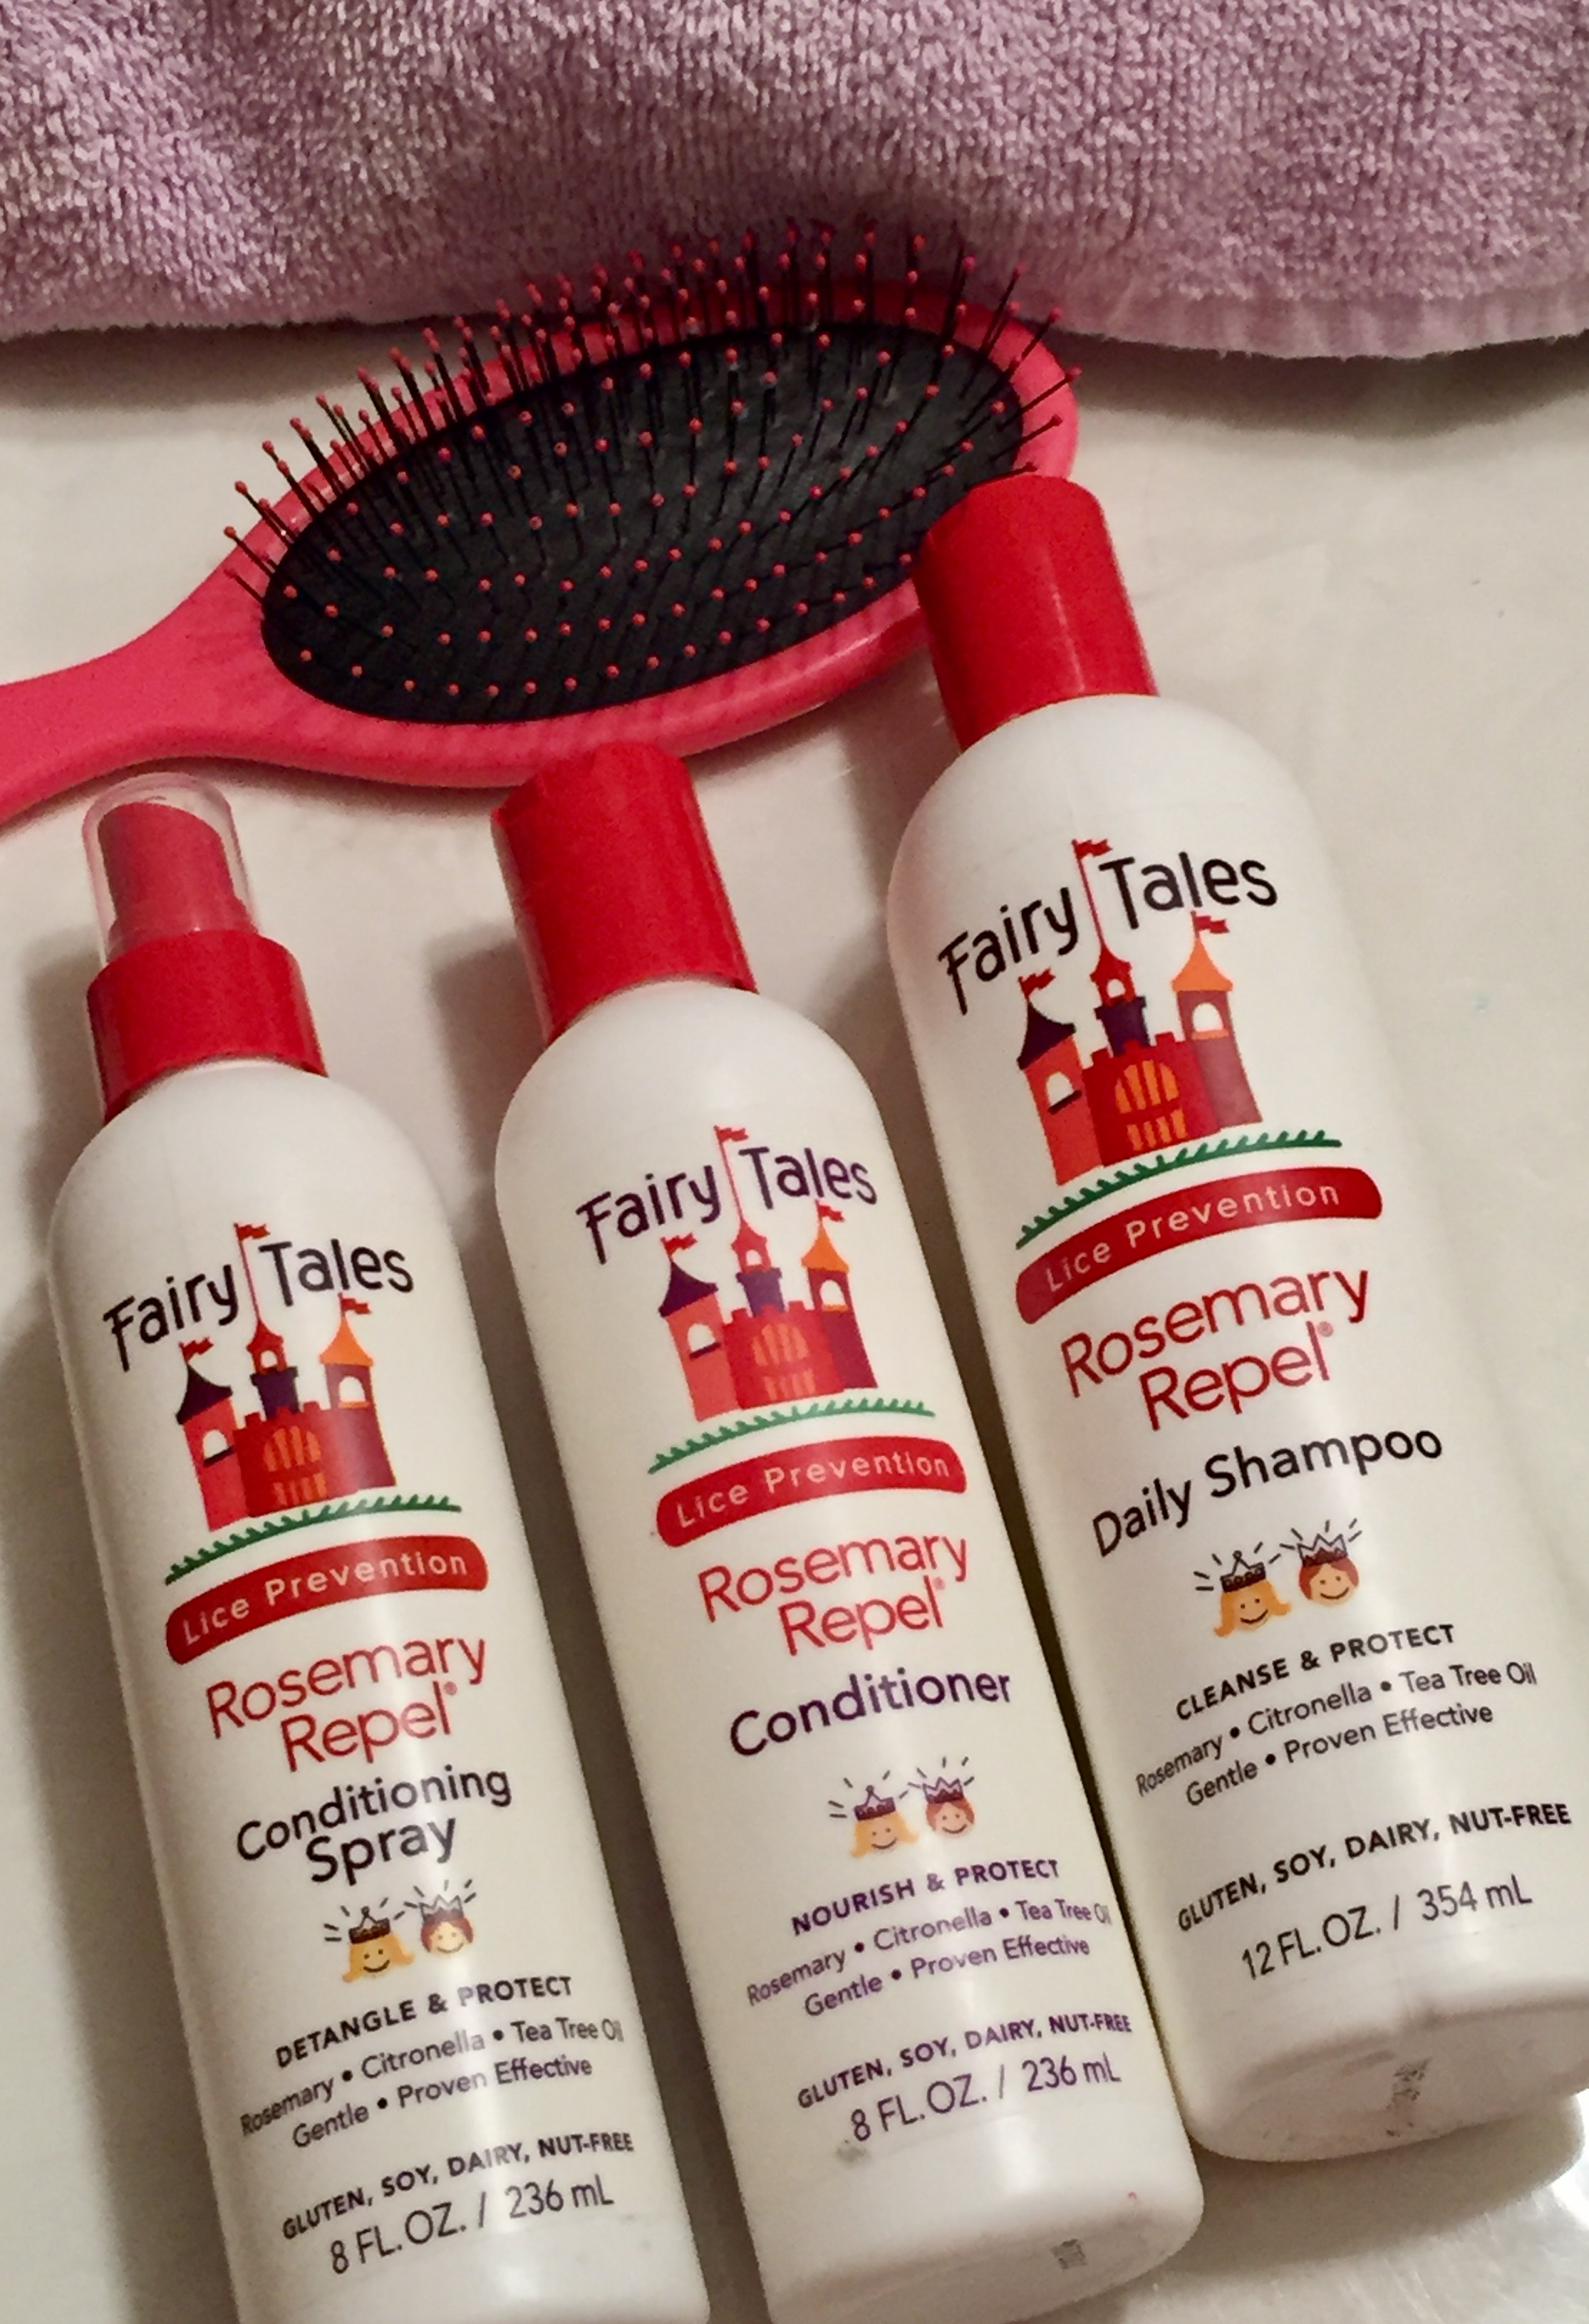 fairy tales lice prevention rosemary repel